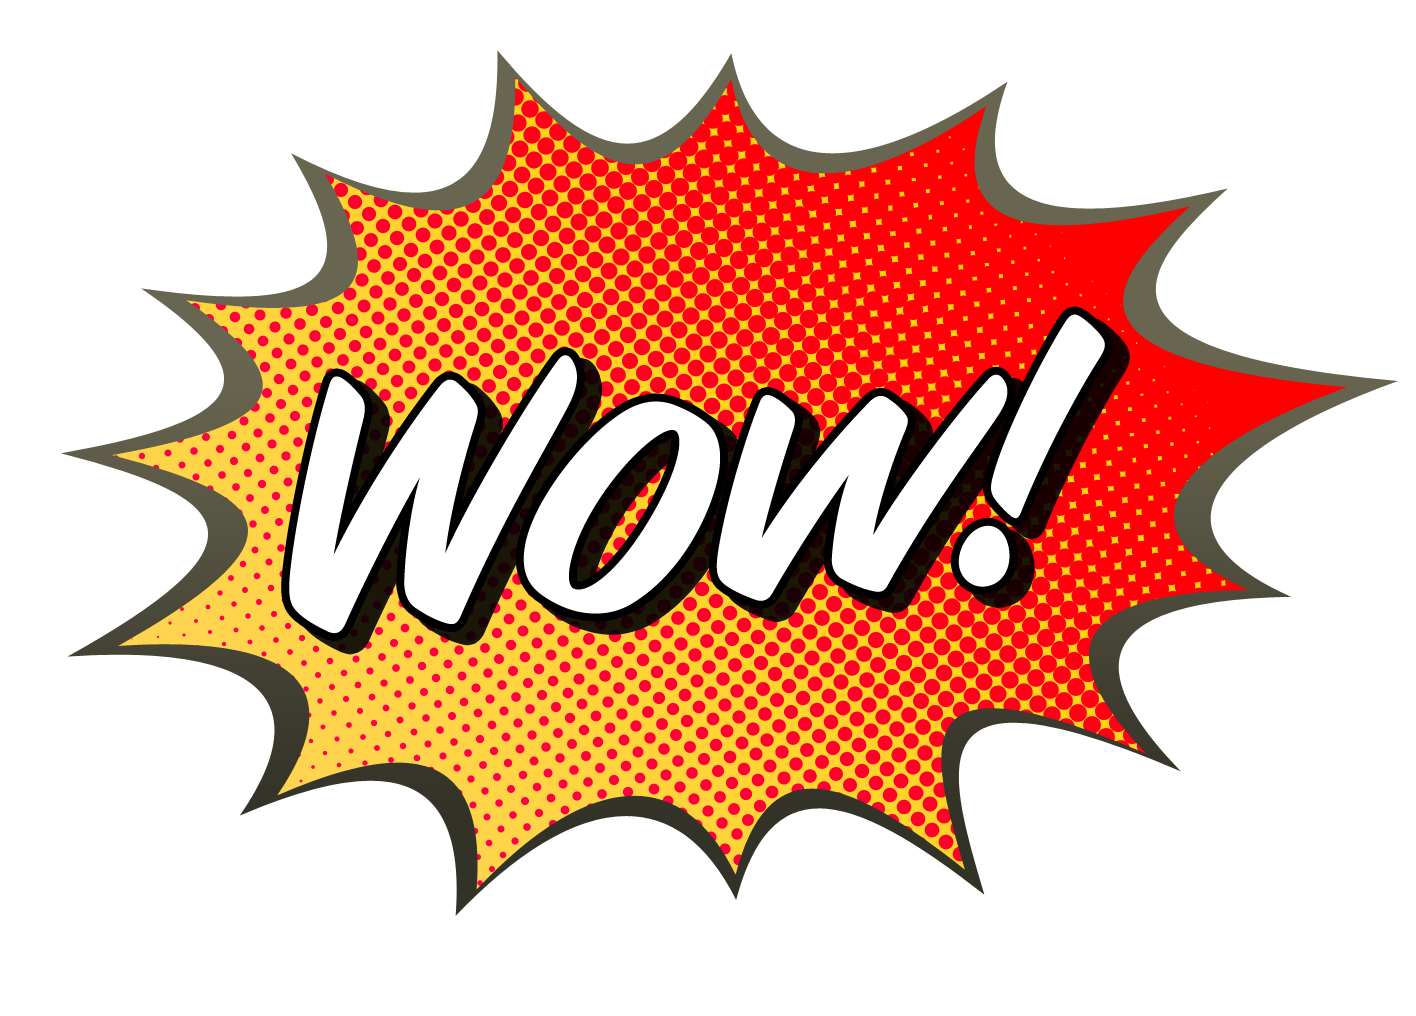 Comic book wow clipart graphic free stock Comic book Clip art - comic 1416*1016 transprent Png Free Download ... graphic free stock